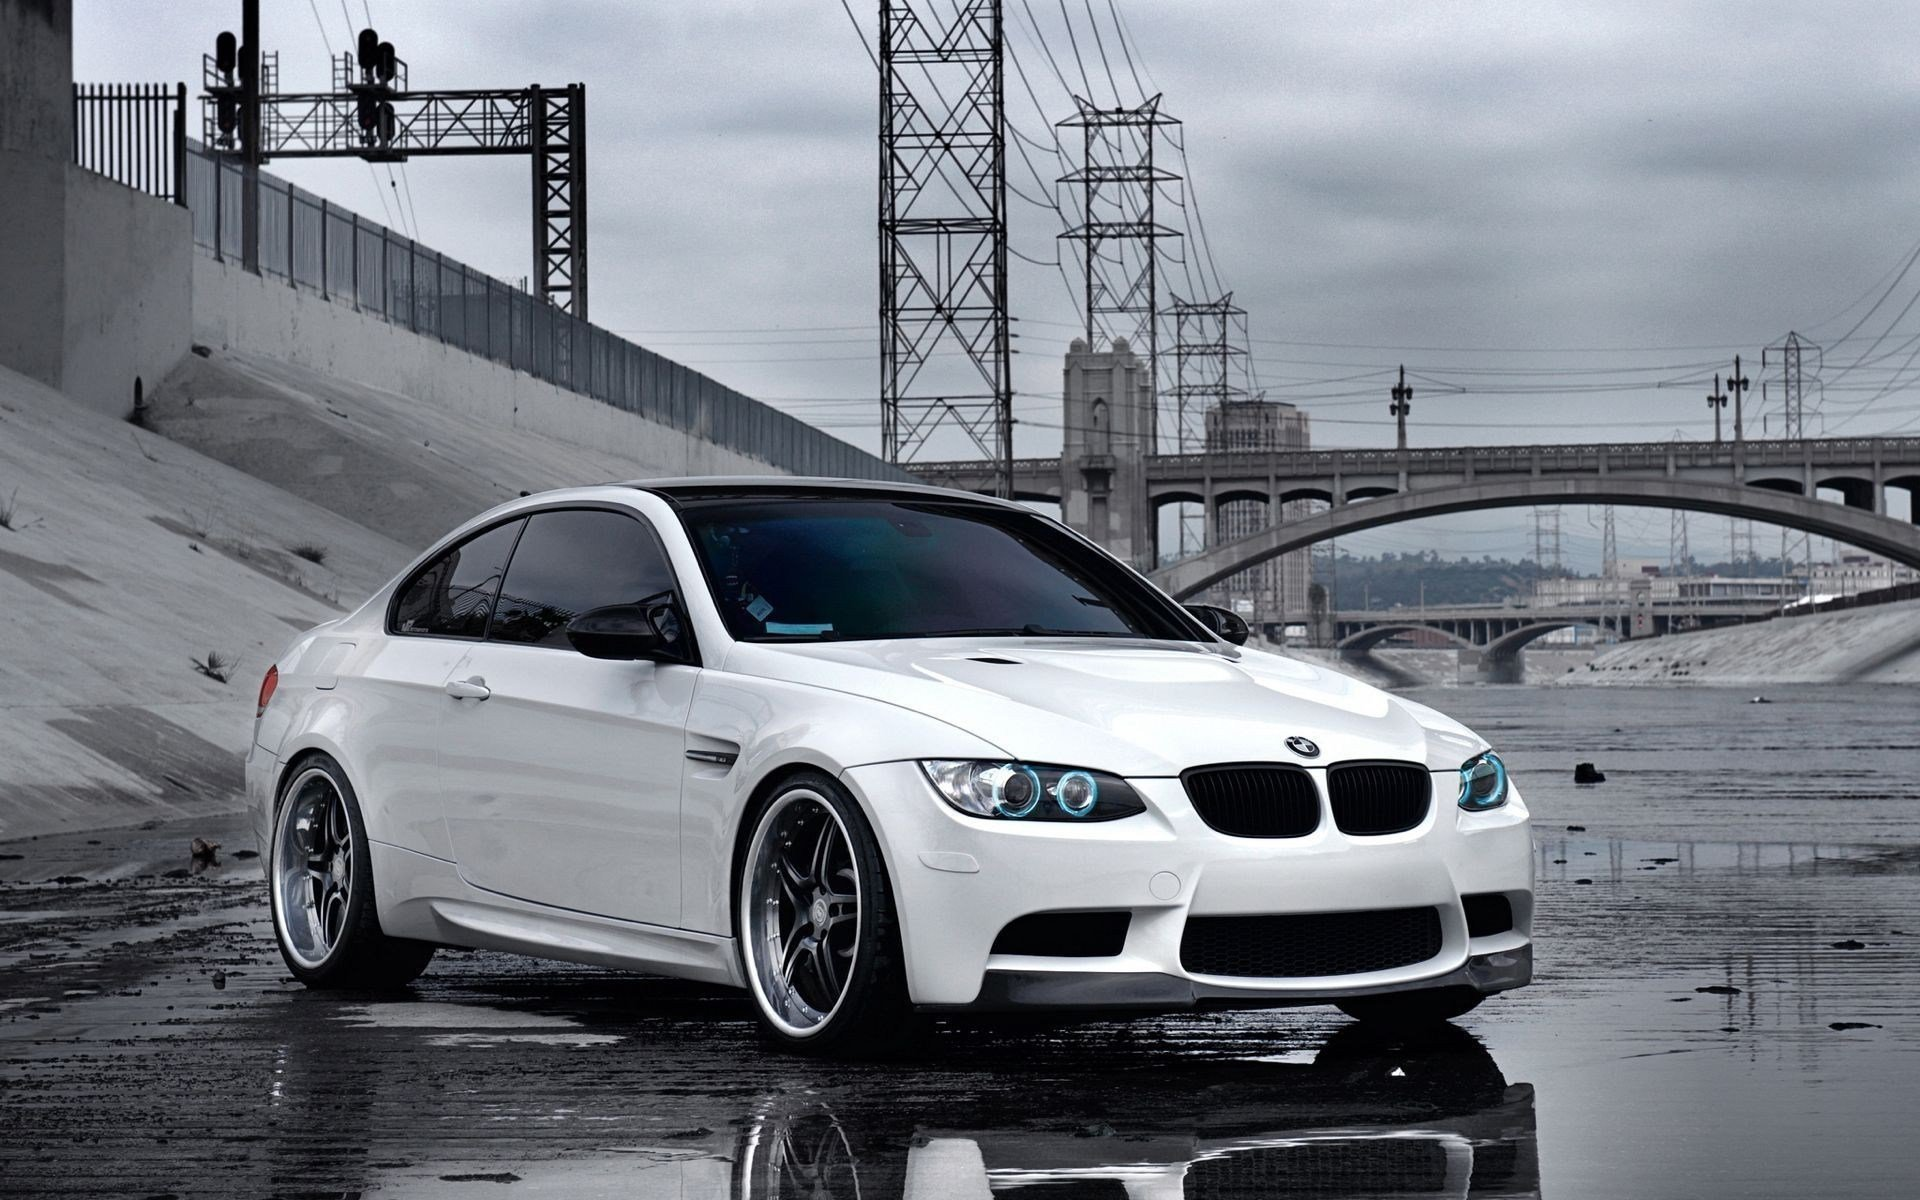 Latest Photos White Bmw Car On Road Size 79119 Hd Wallpapers Free Download